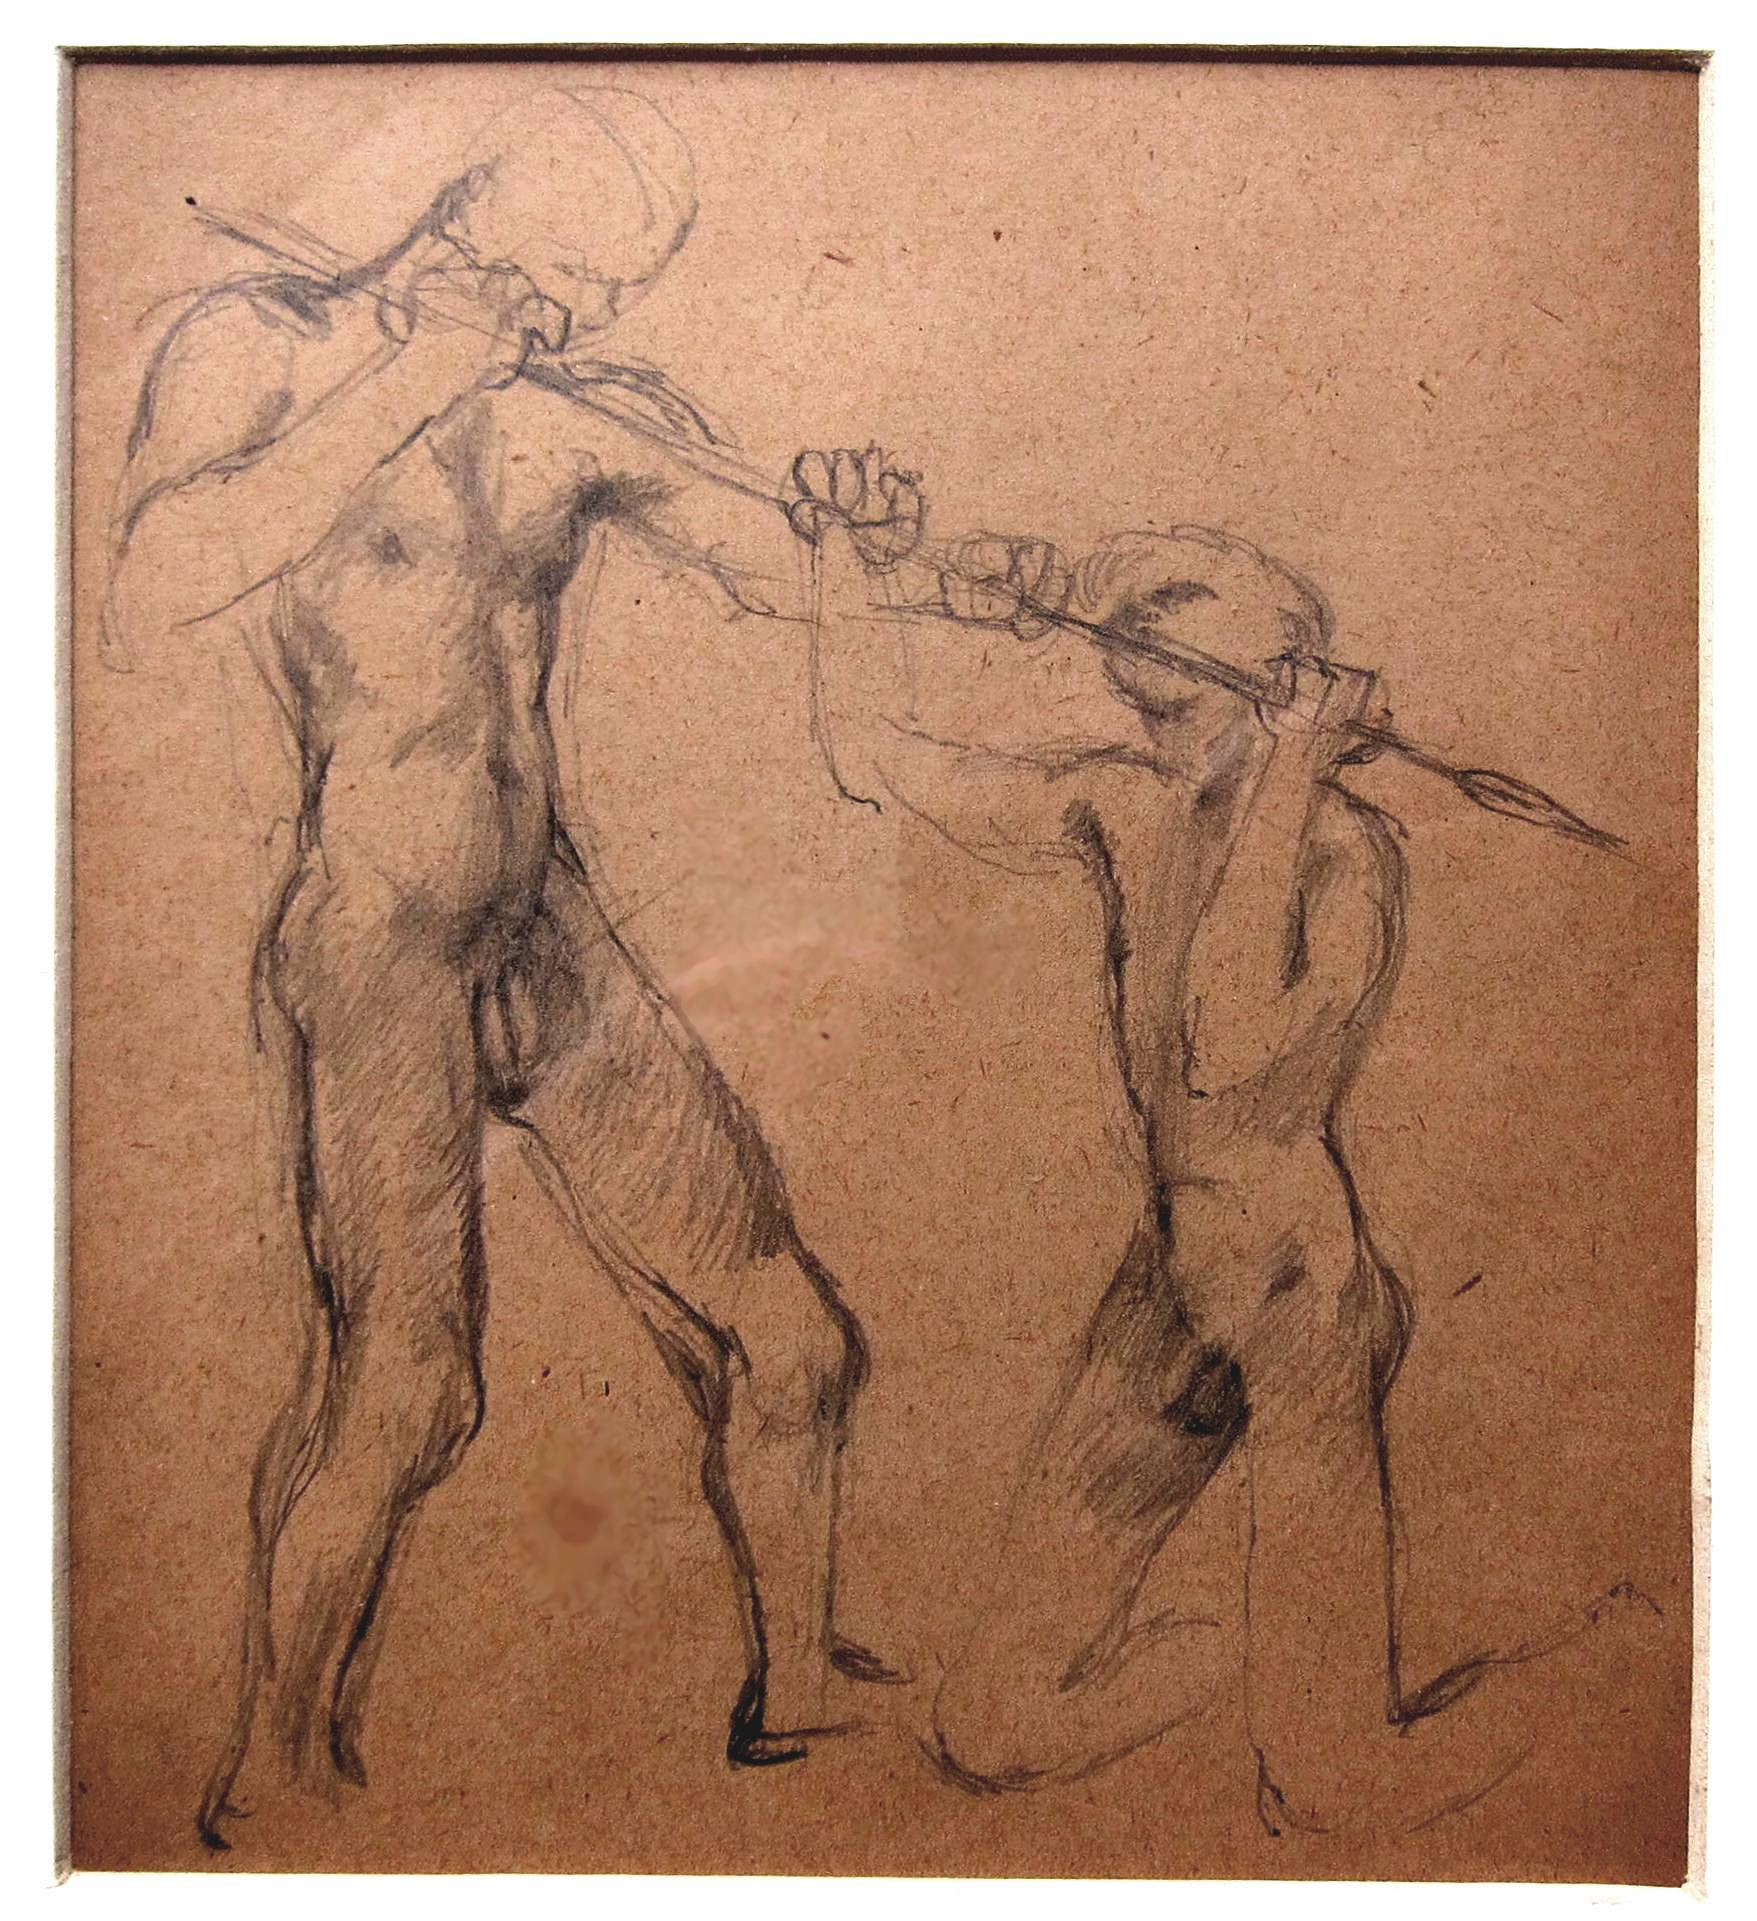 Lot 59 - KEITH VAUGHAN [1912-77]. Two Men and a Spear, c.1943. pencil drawing on brown paper. 20 x 18 cm.